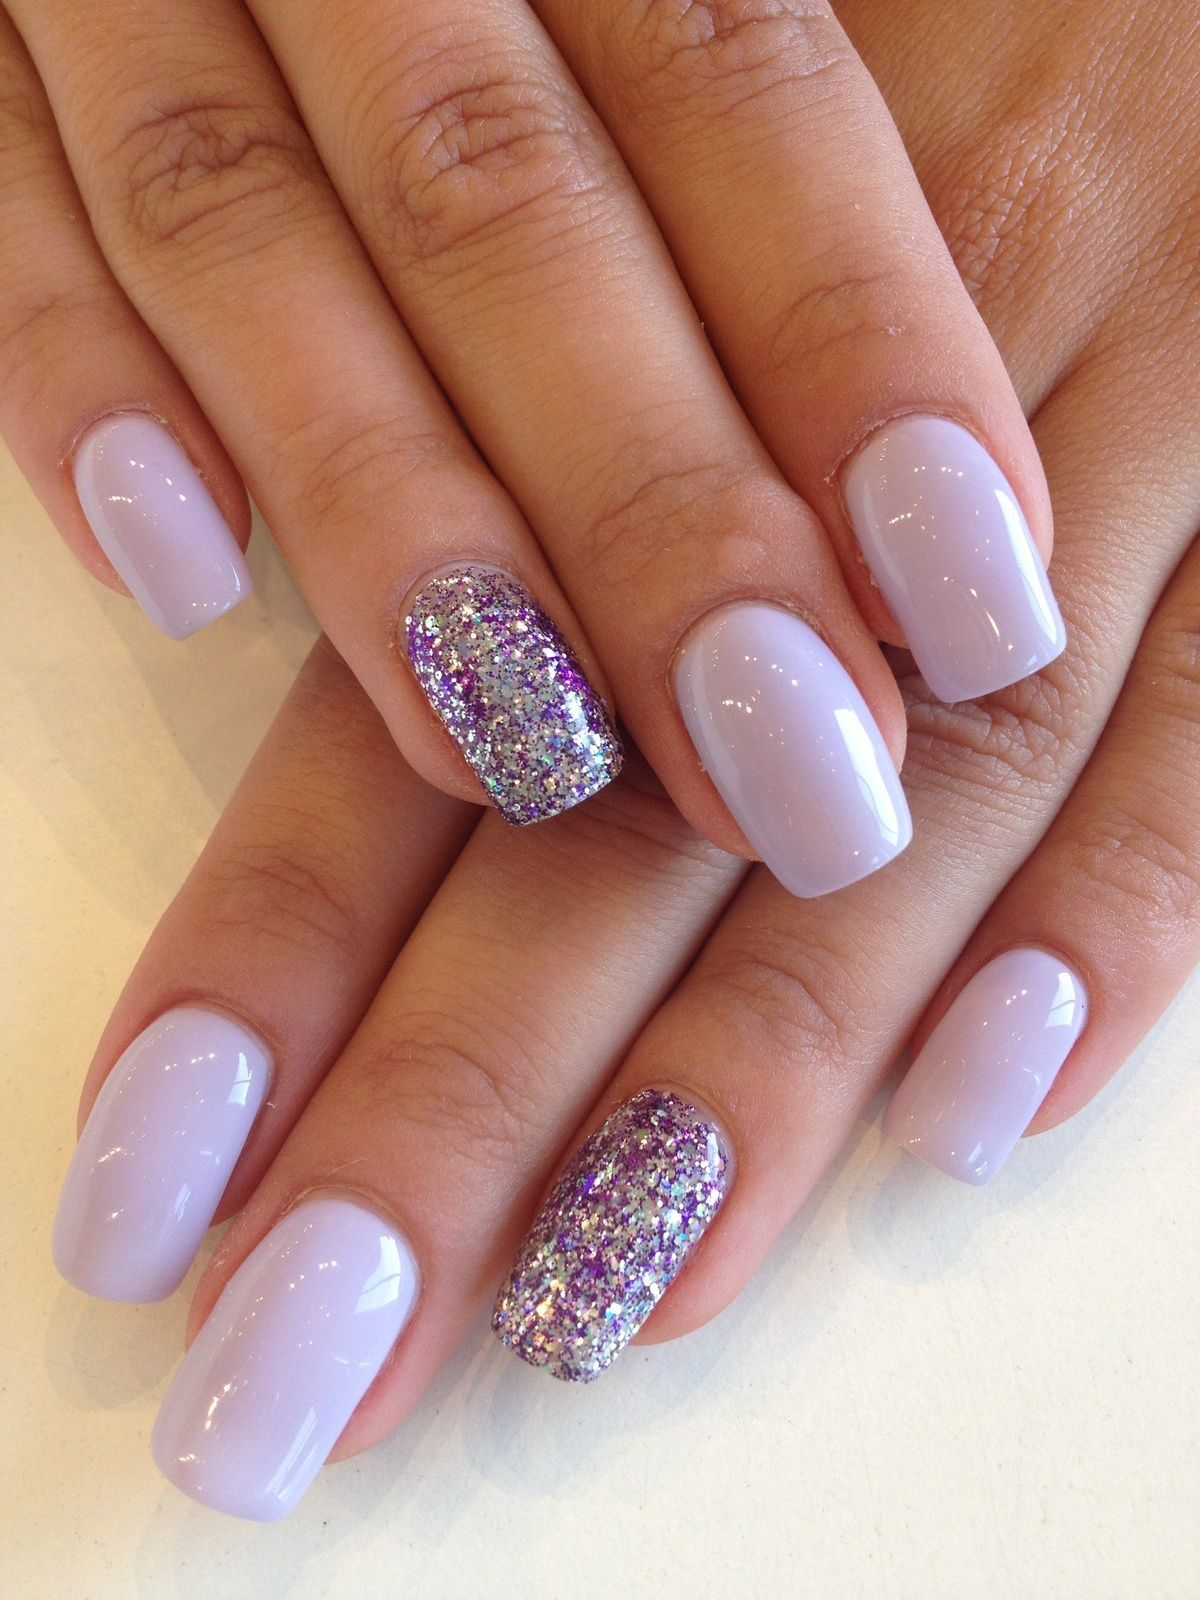 Trendy Purple Nail Art Designs You Have to See - Pin By Stephanie Gaither On Nails Pinterest